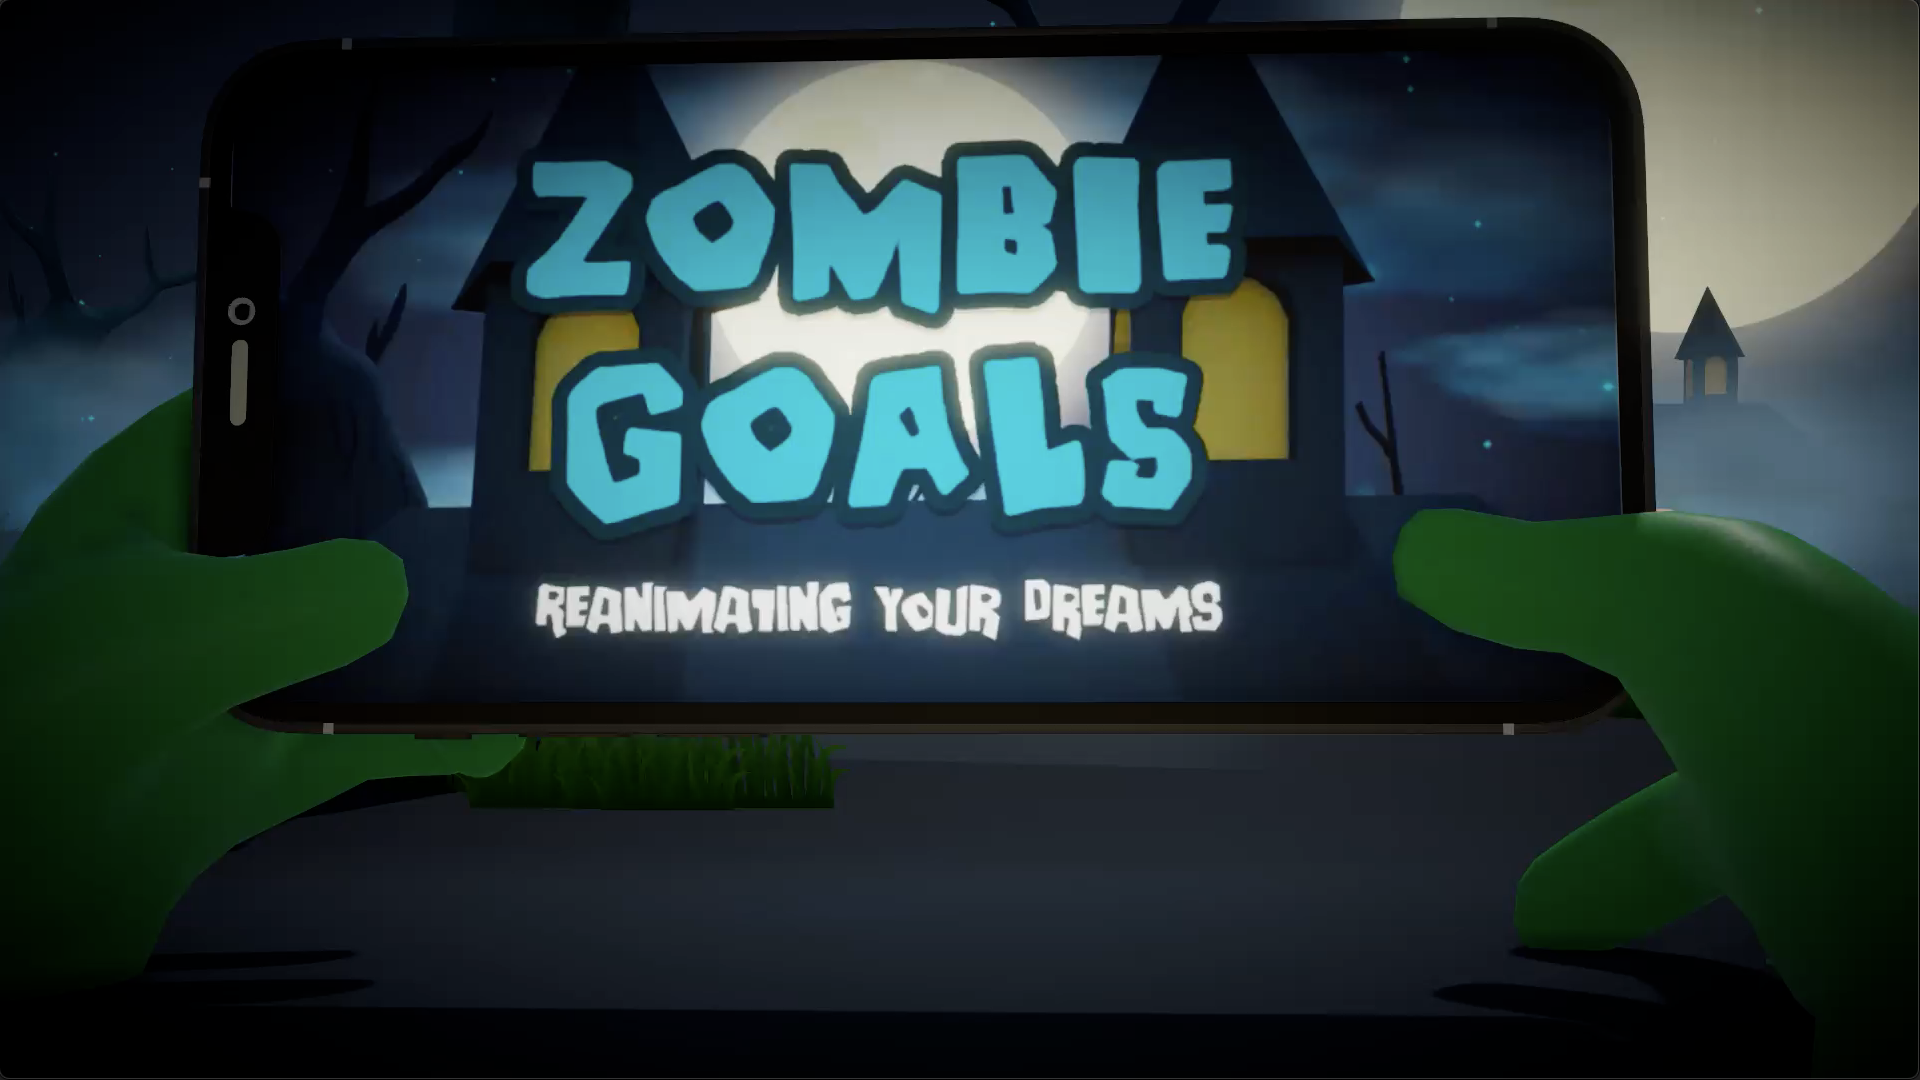 Zombie hands in a graveyard holding an iPhone in landscape with the Zombie Goals app open on it